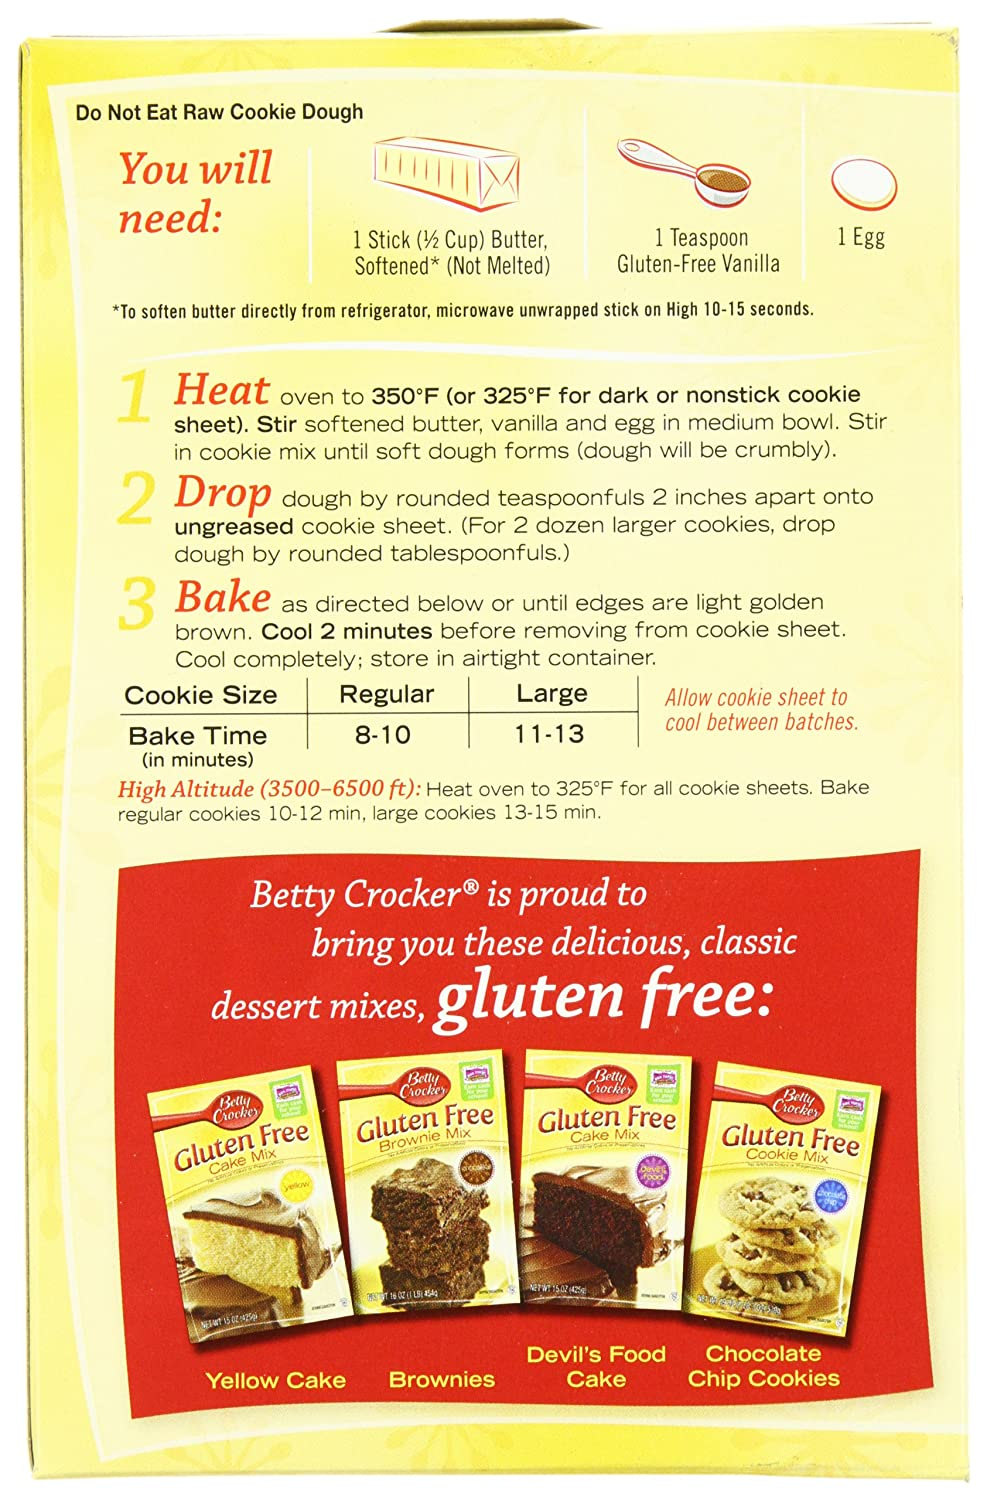 Amazon.com : Betty Crocker Gluten Free Chocolate Chip Cookie Mix ...